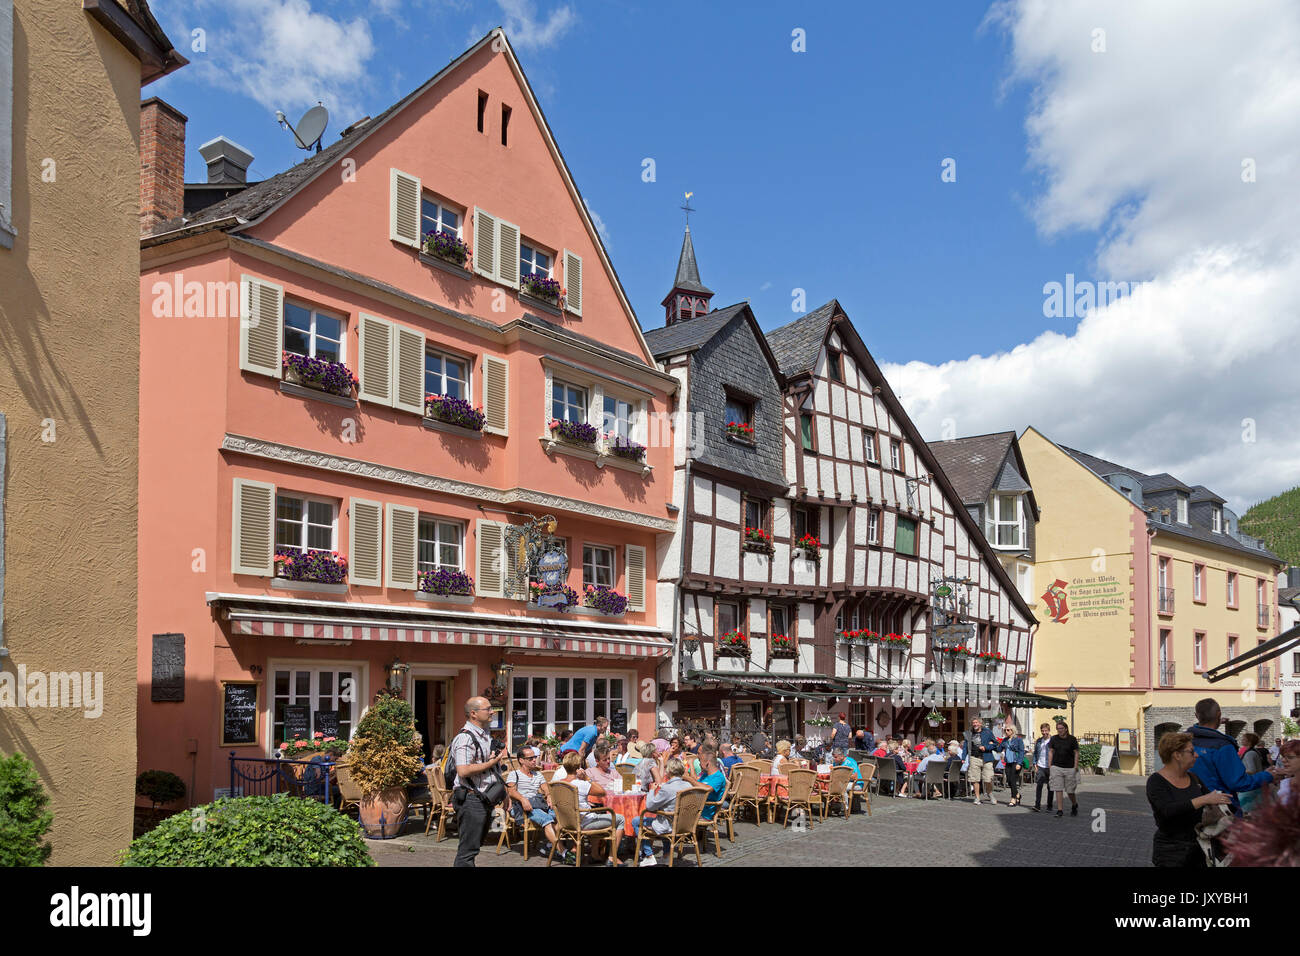 Inn Alter Klosterhof, old town, Bernkastel-Kues, Moselle Valley, Germany - Stock Image